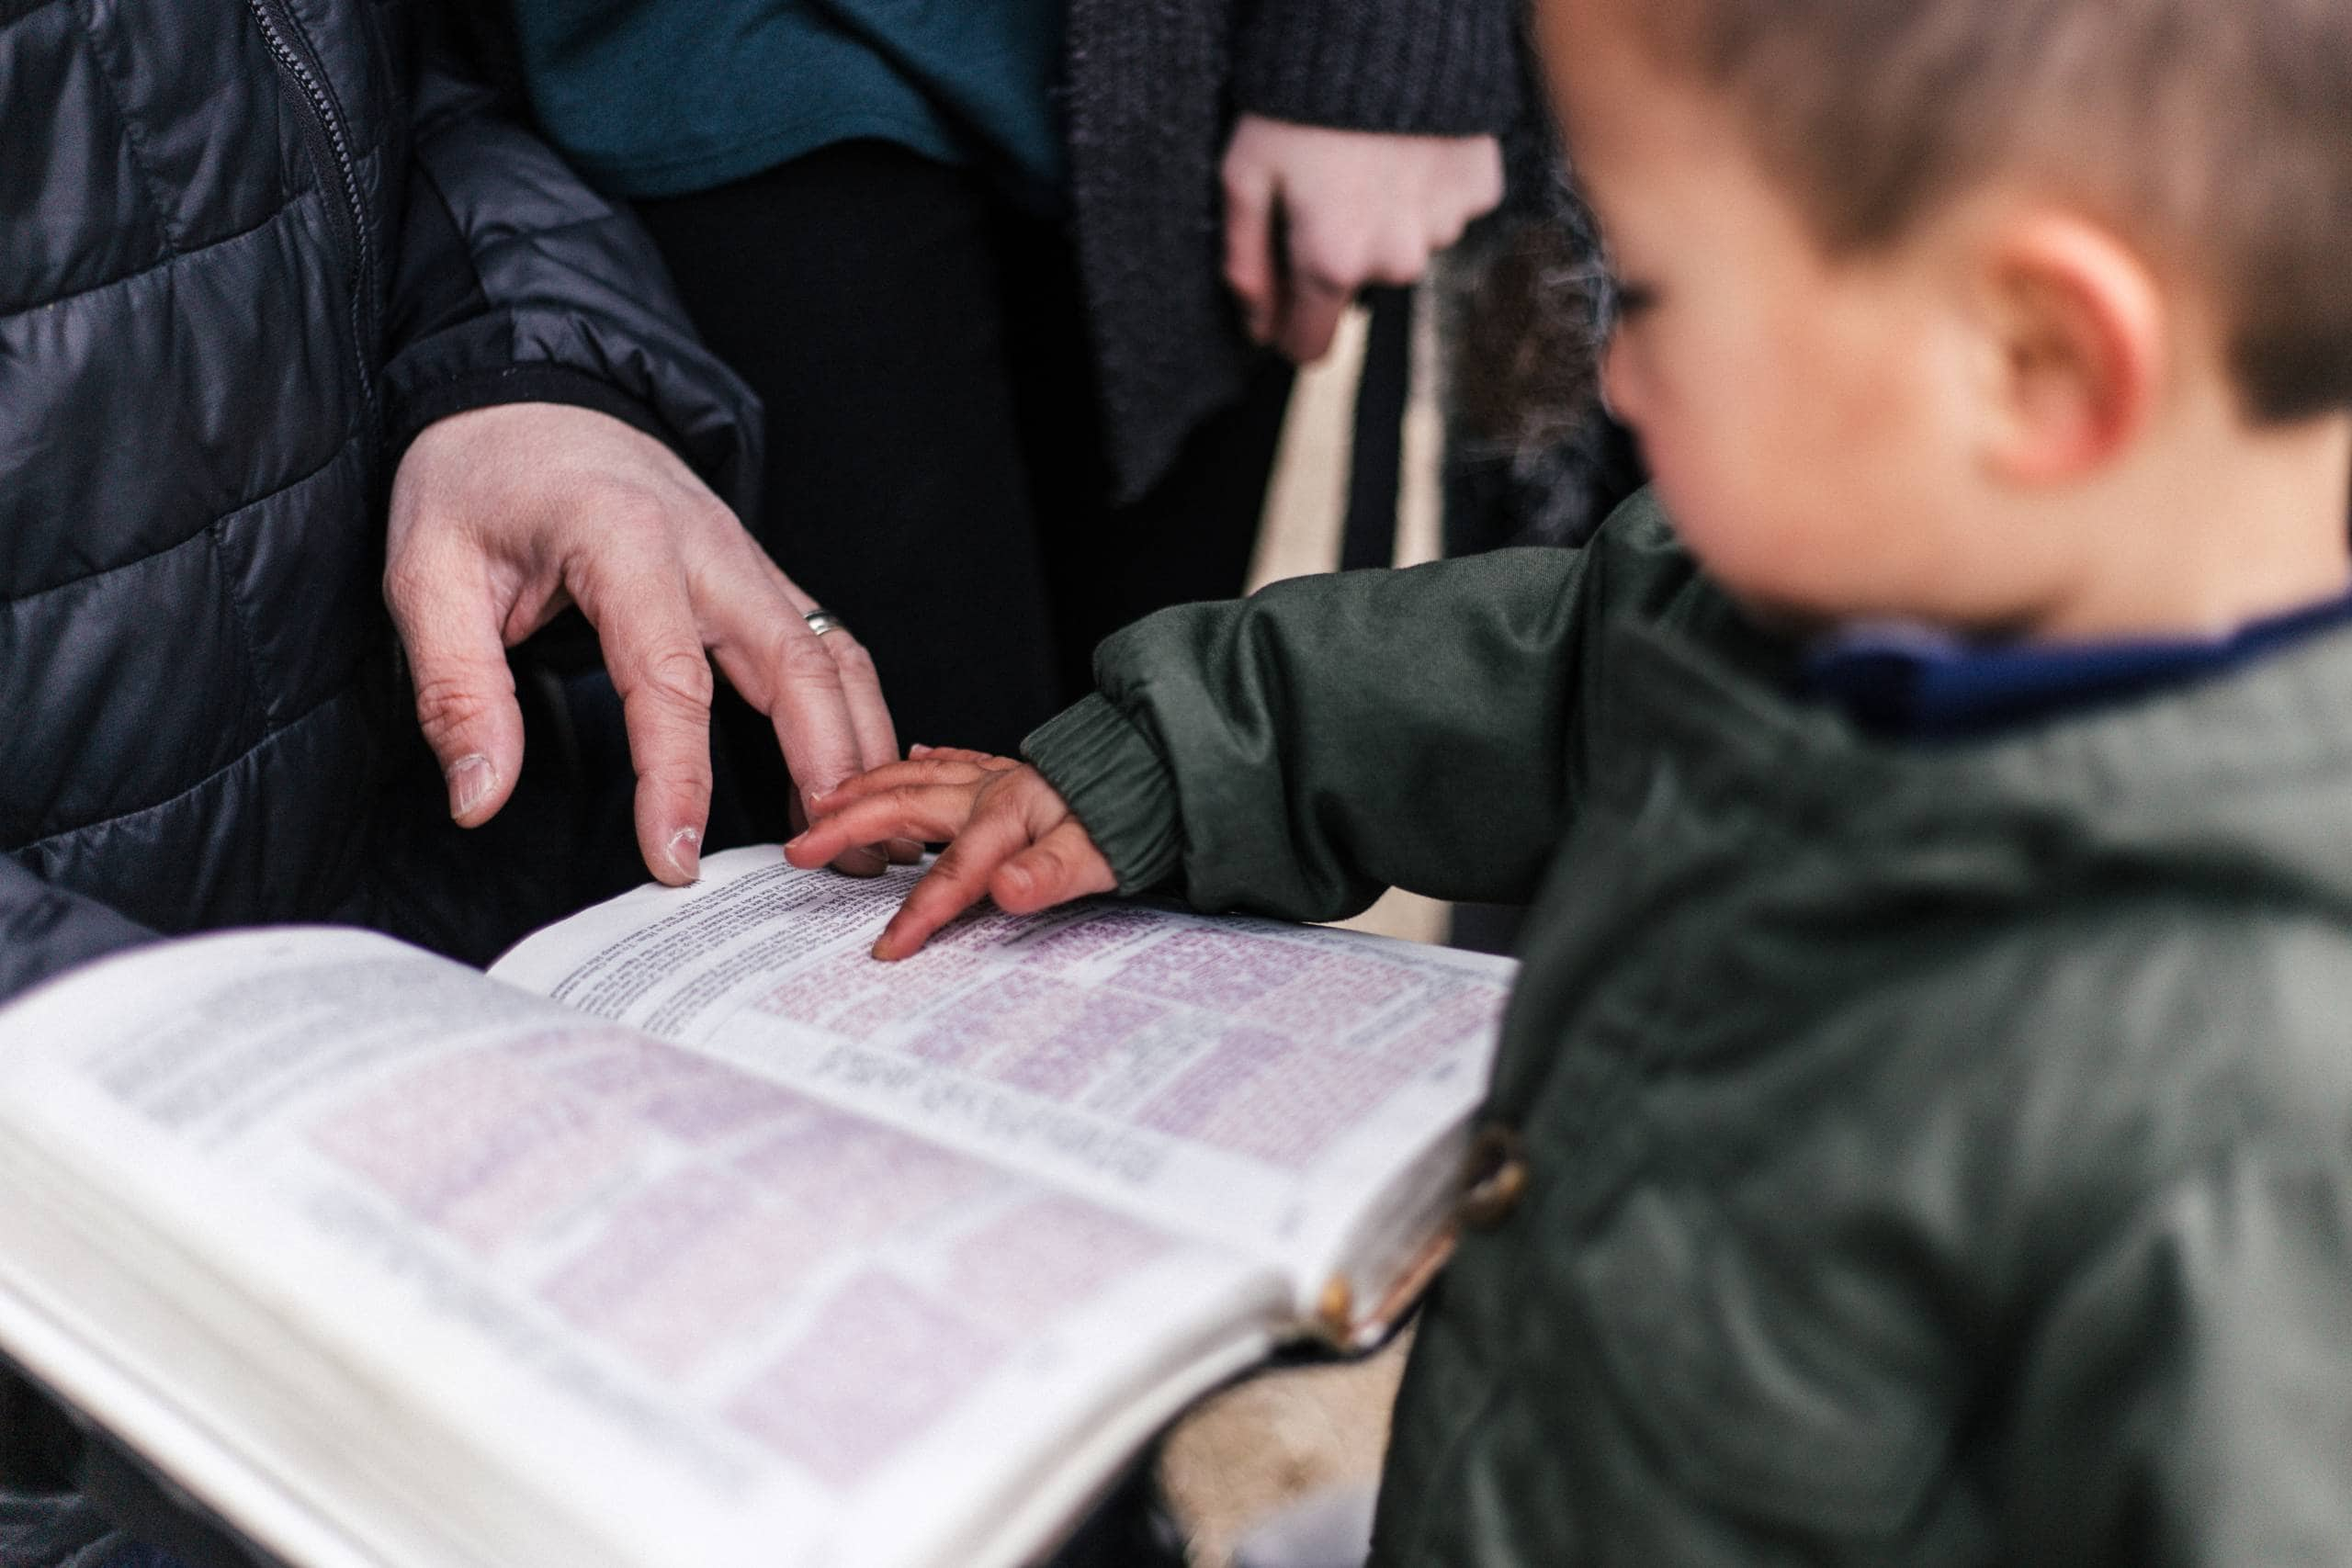 A child reaching out to touch the pages of an open book held by an adult